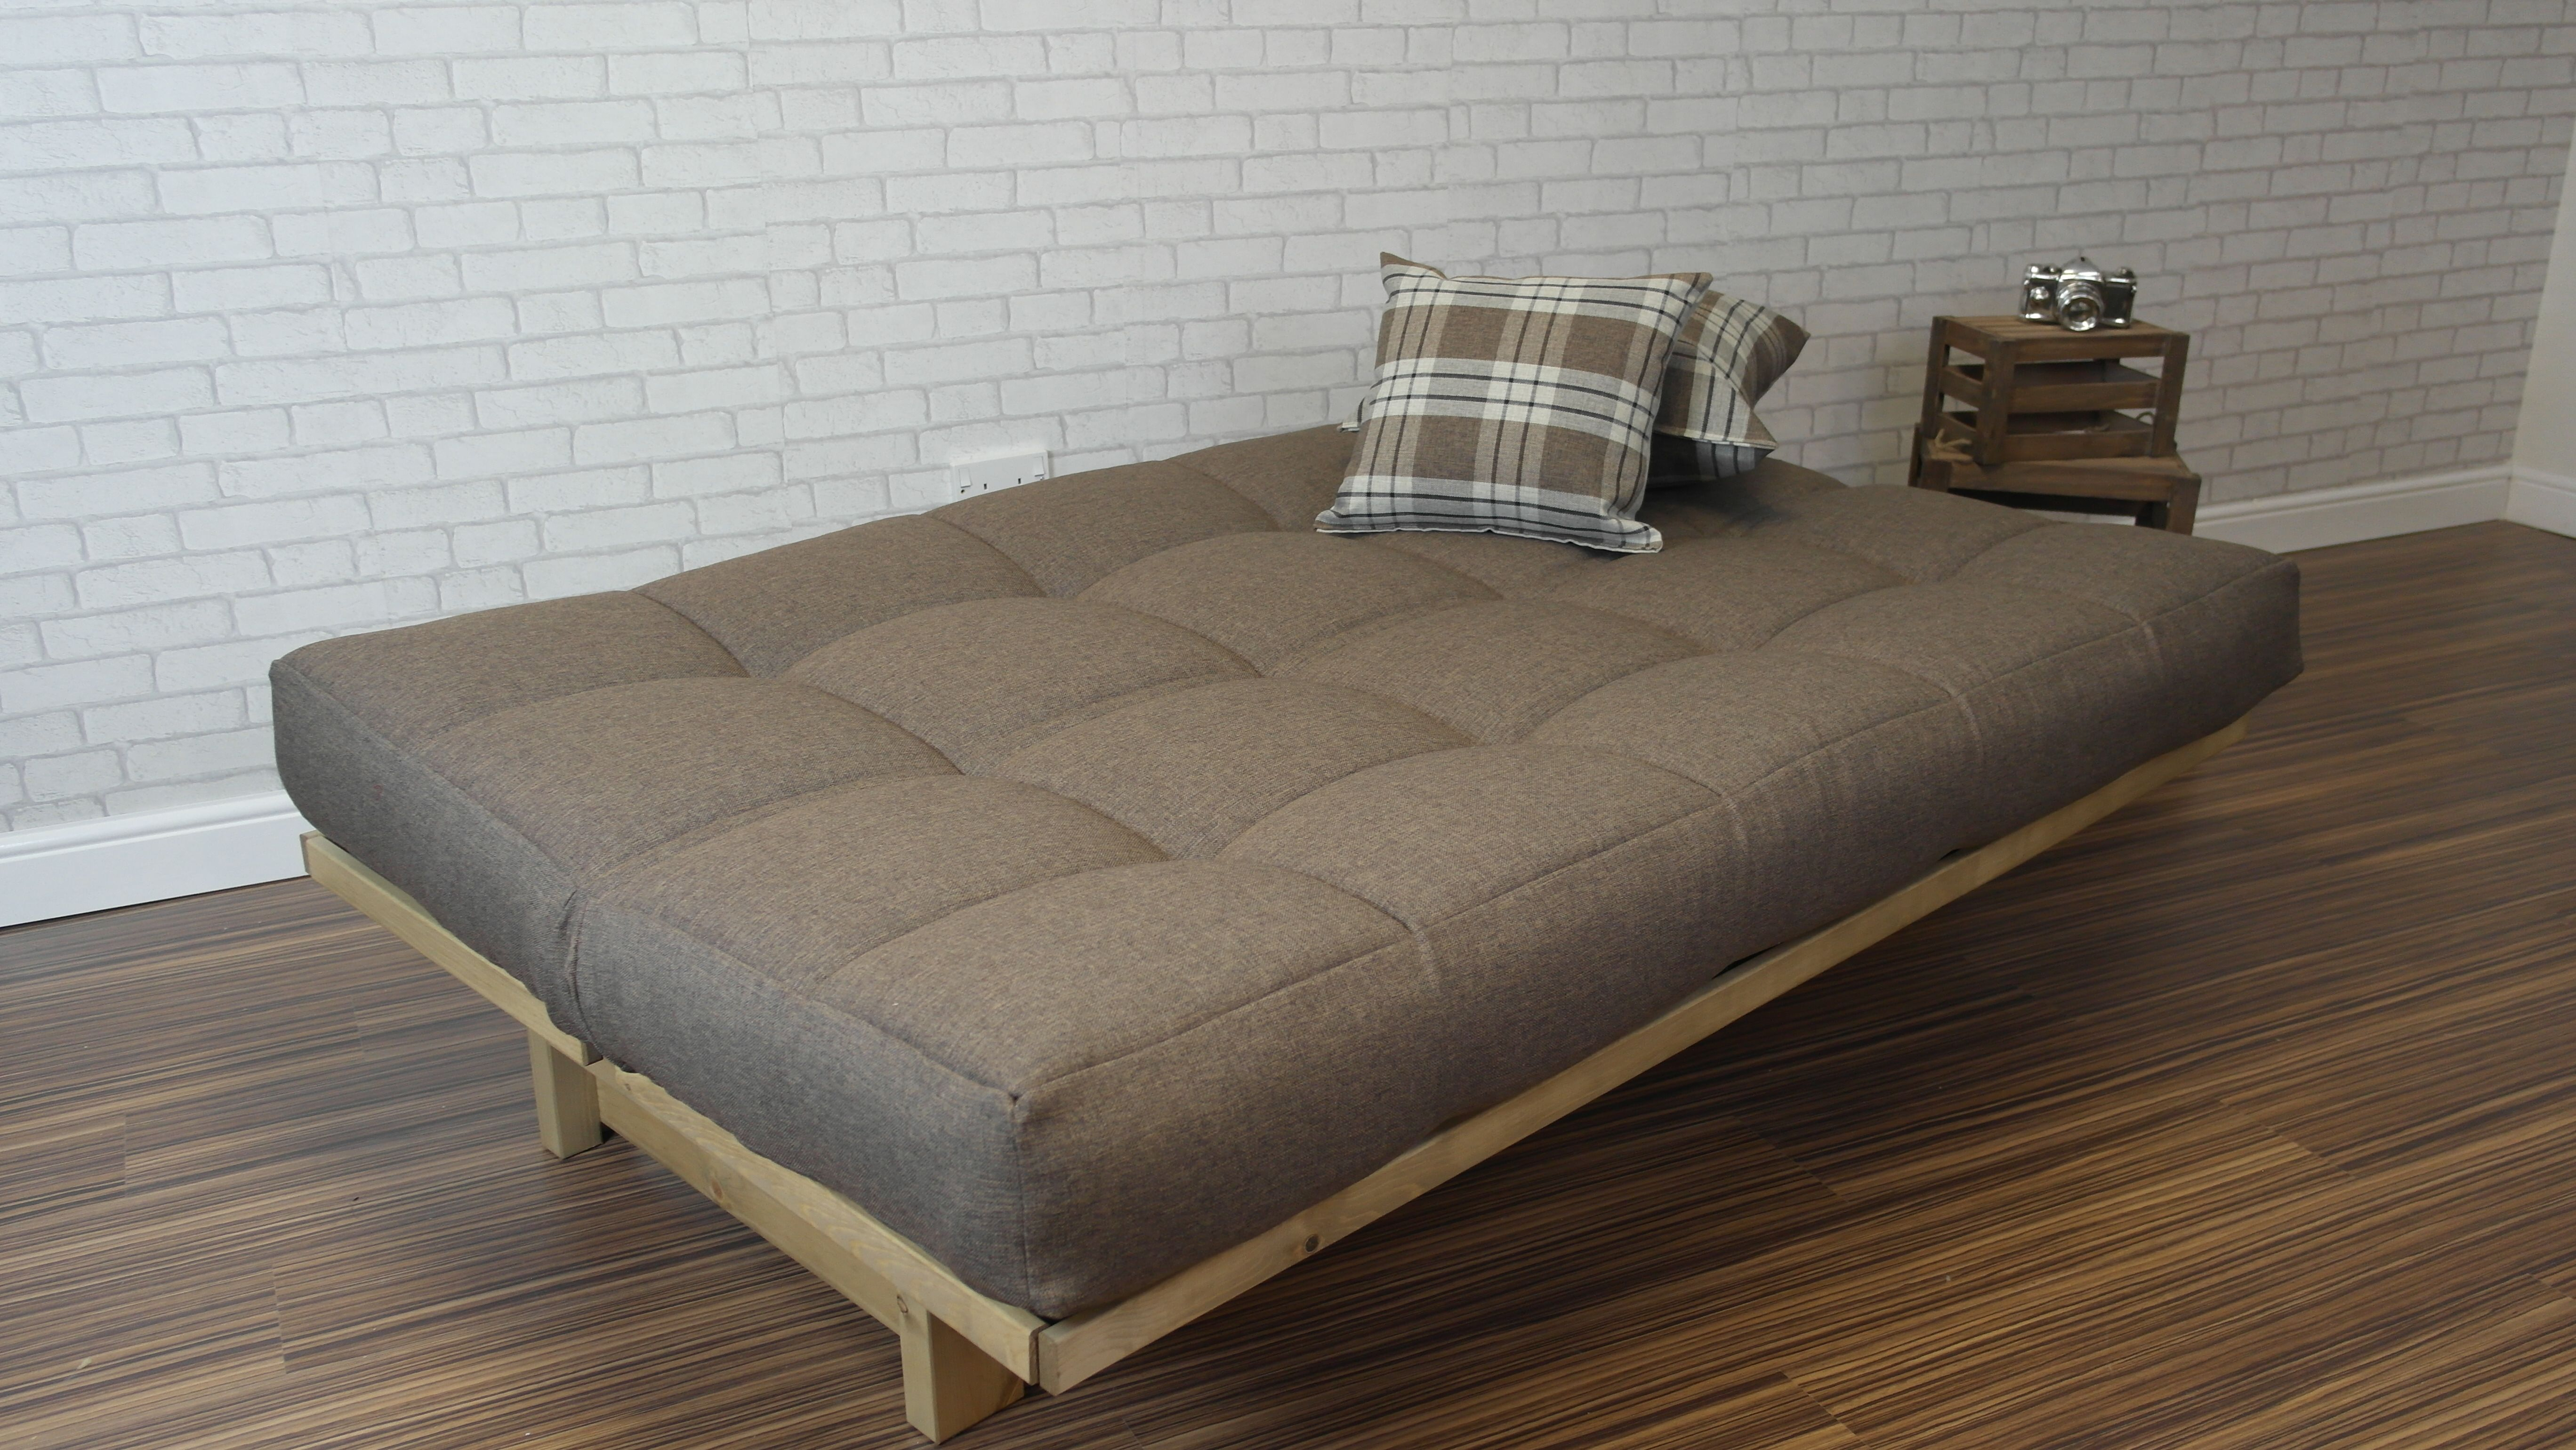 Double Futon Sofa Bed Mattress Belvedere Sofa Bed With A Mattress Of 130cm X 192cm Ideal For